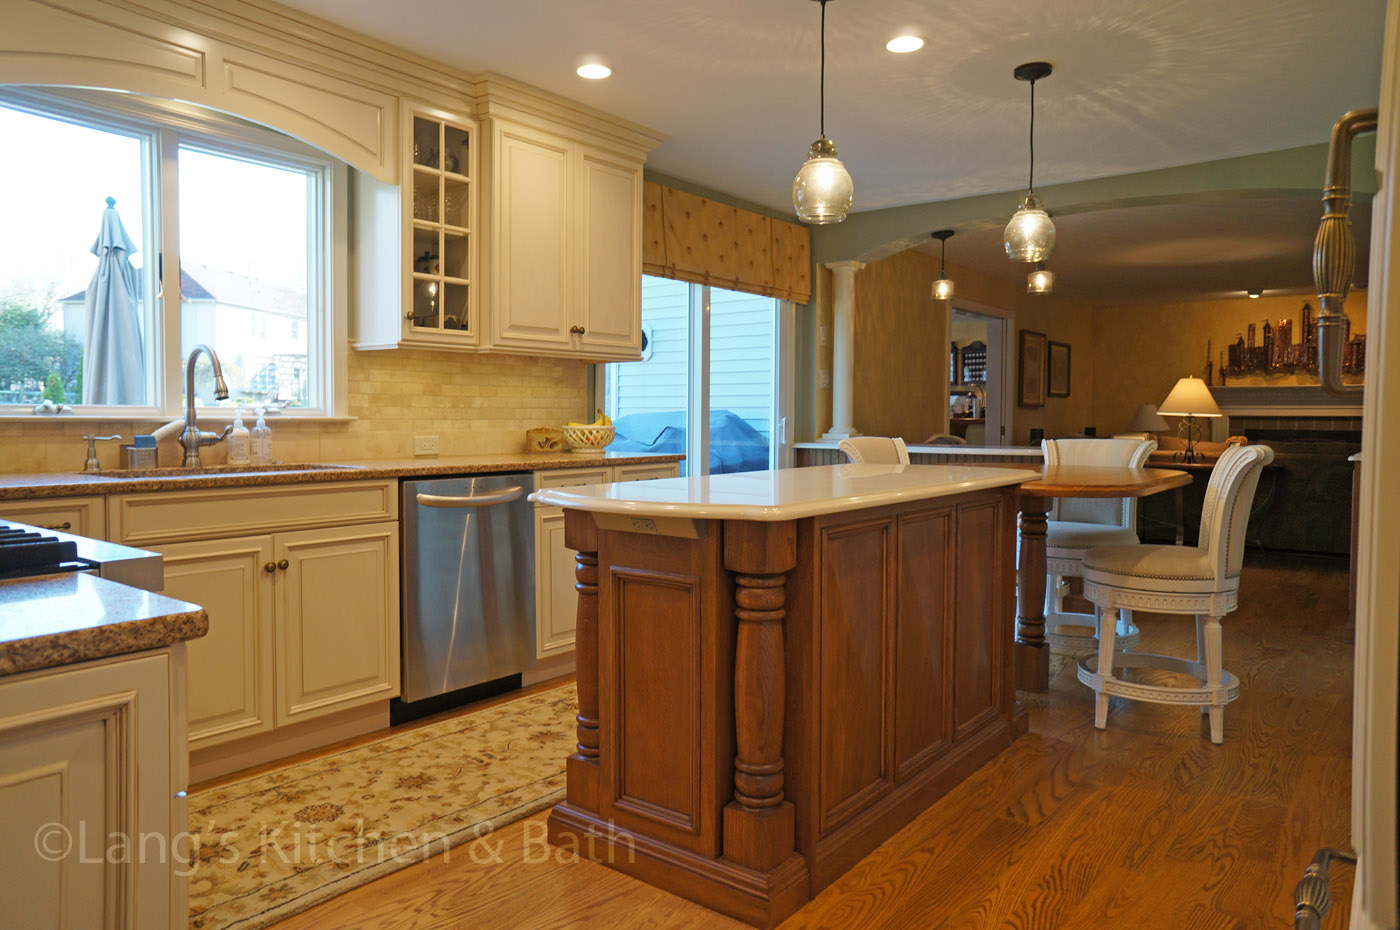 Peirce kitchen design 6_web.jpg